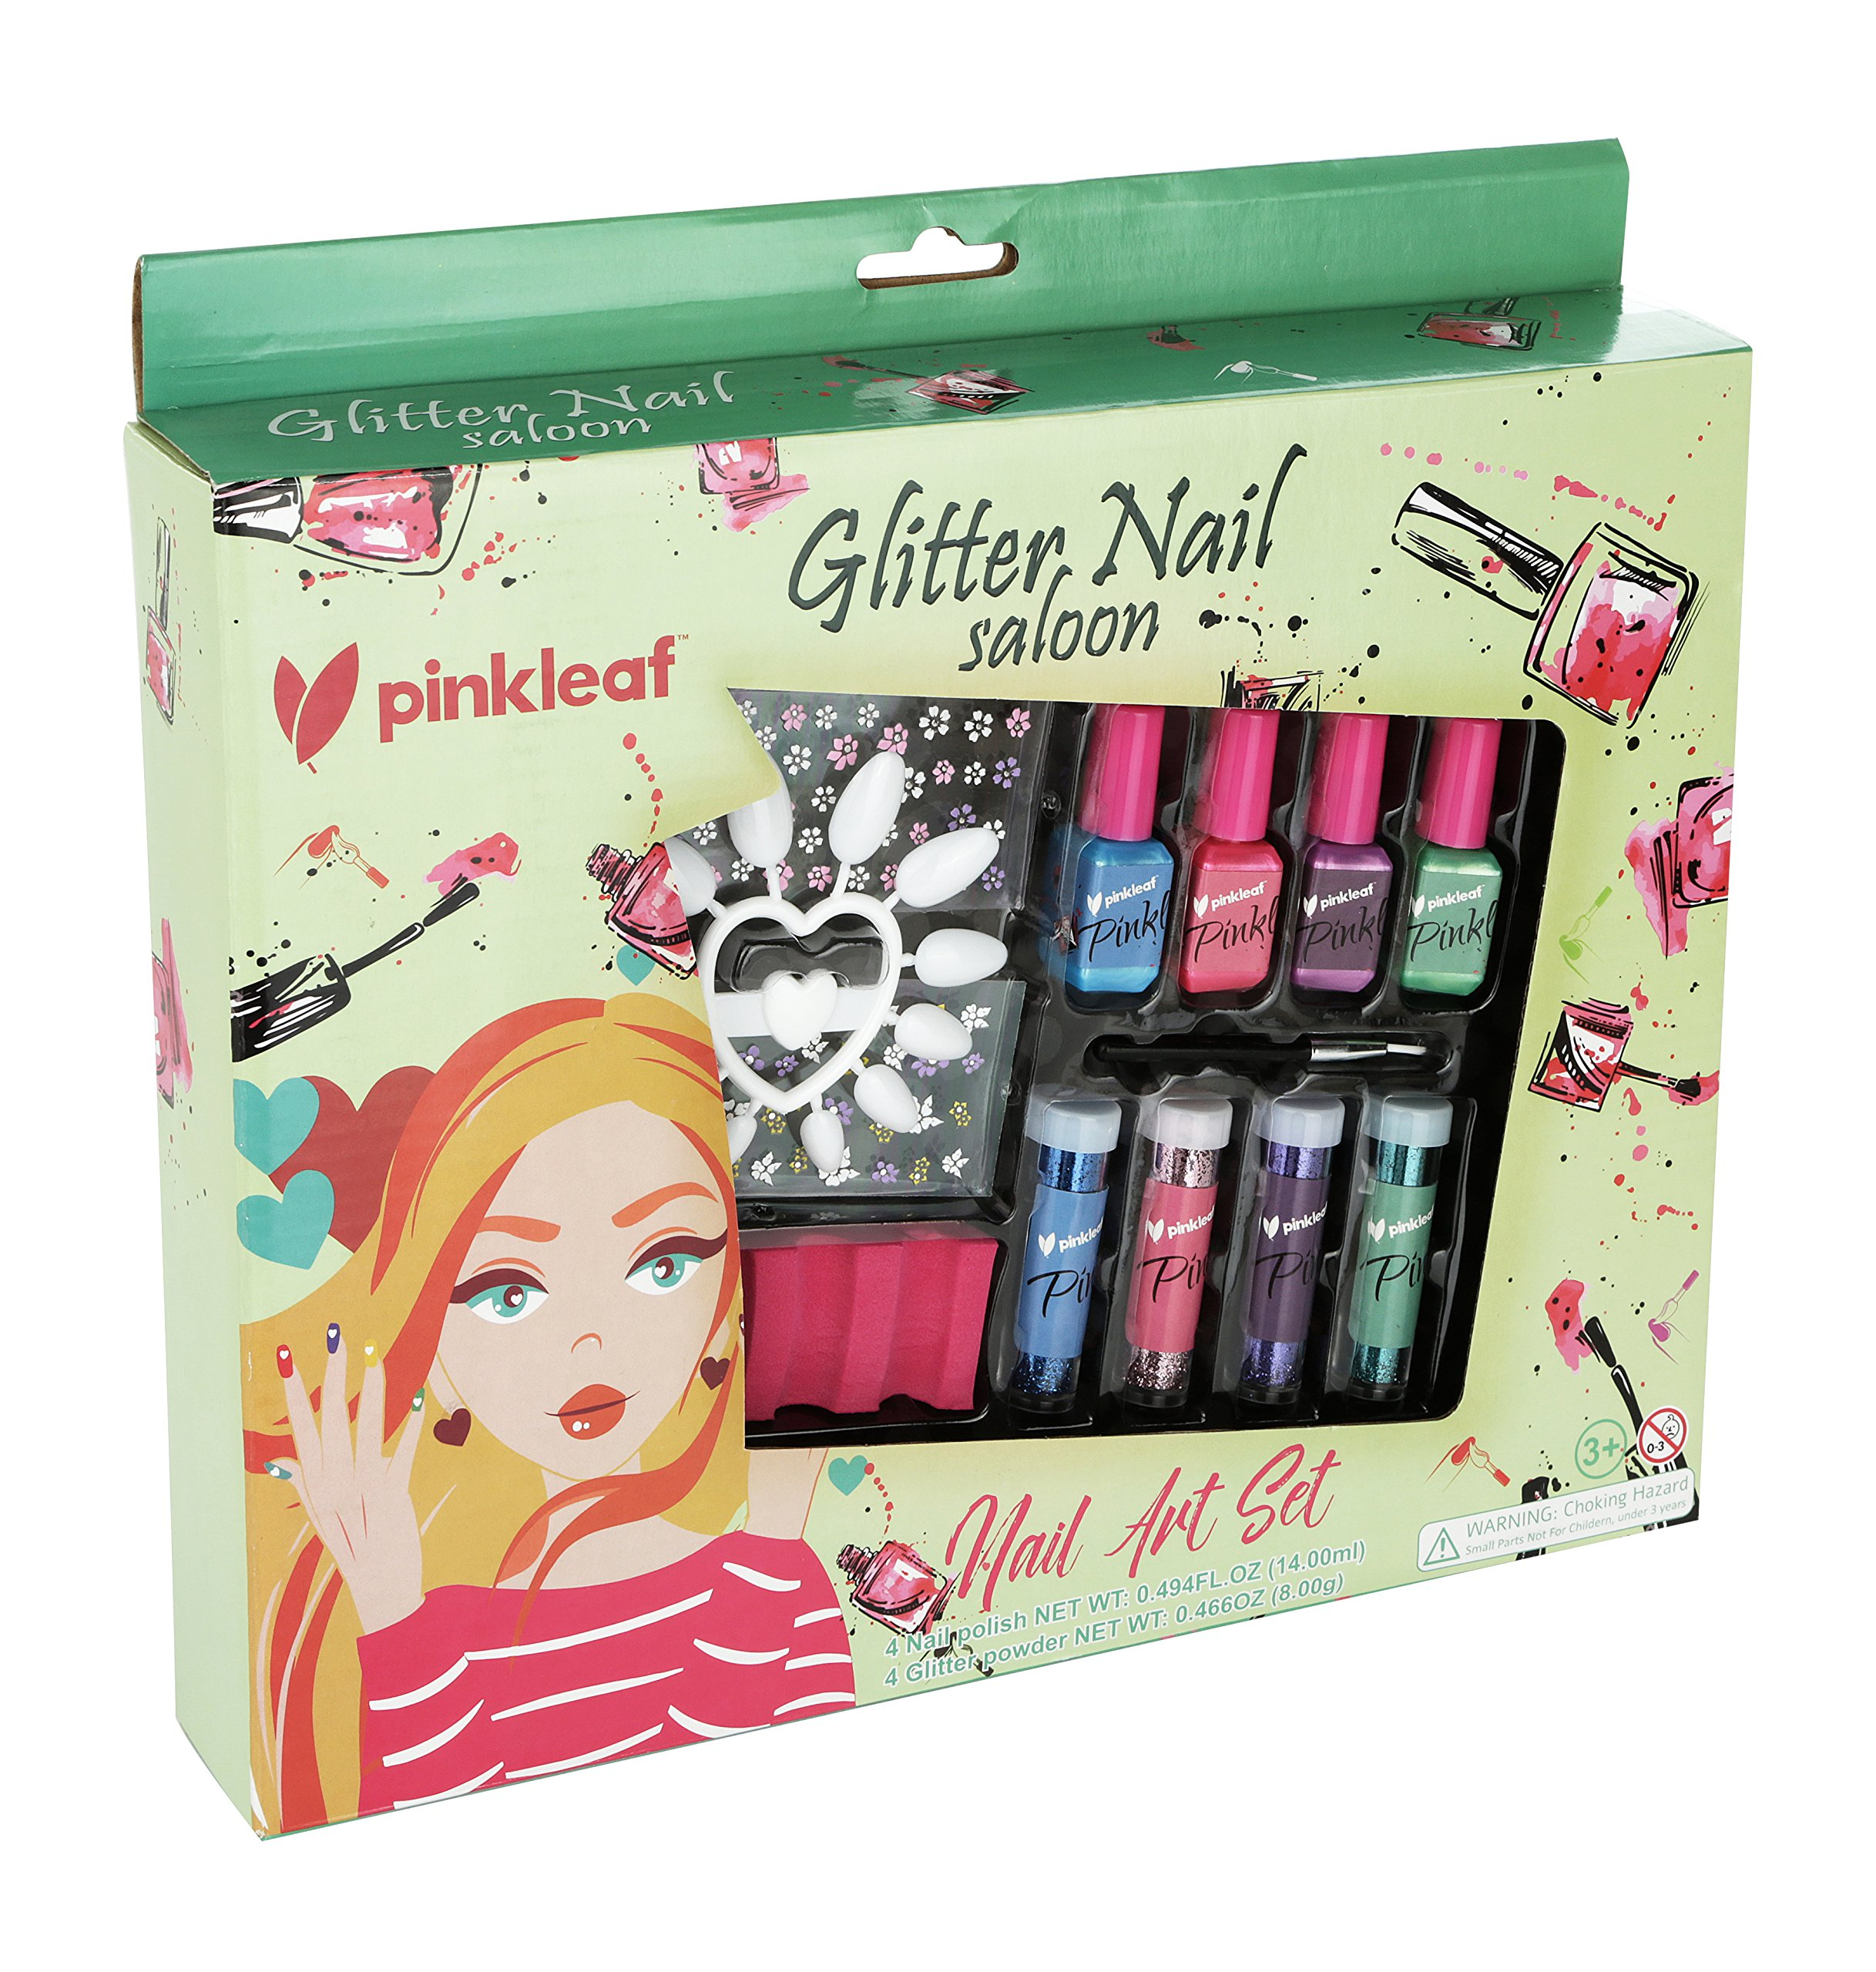 PinkLeaf Glitter Powder Nail Art Gift Kit for Kids 3+ - Non-Toxic Polish, Plastic Nails, Flower Stickers, Glittery Dust Pots & Applicator Brush